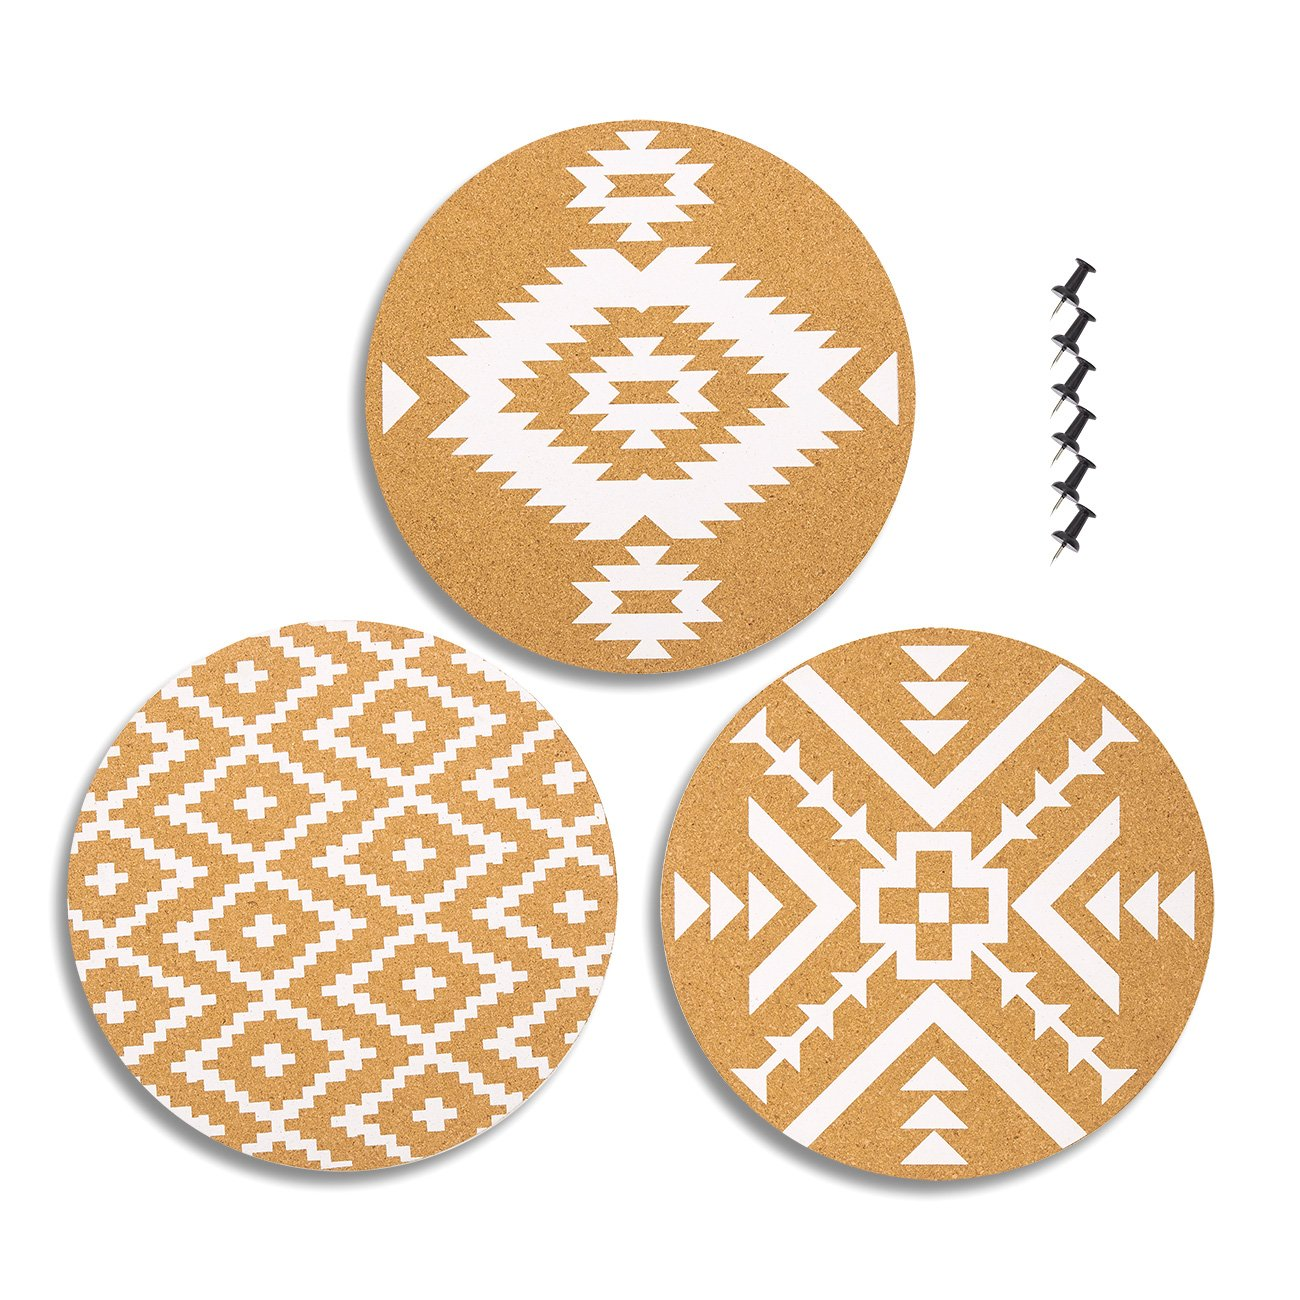 3-Pack Cork Bulletin Boards in 3 Assorted Designs - Decorative Self-Adhesive Round Wall DecorCorkboards with Tribal Prints, 6 Push Pins Included for Pinning Memos and Reminders, 12 x 12 x 0.2 inches Juvale